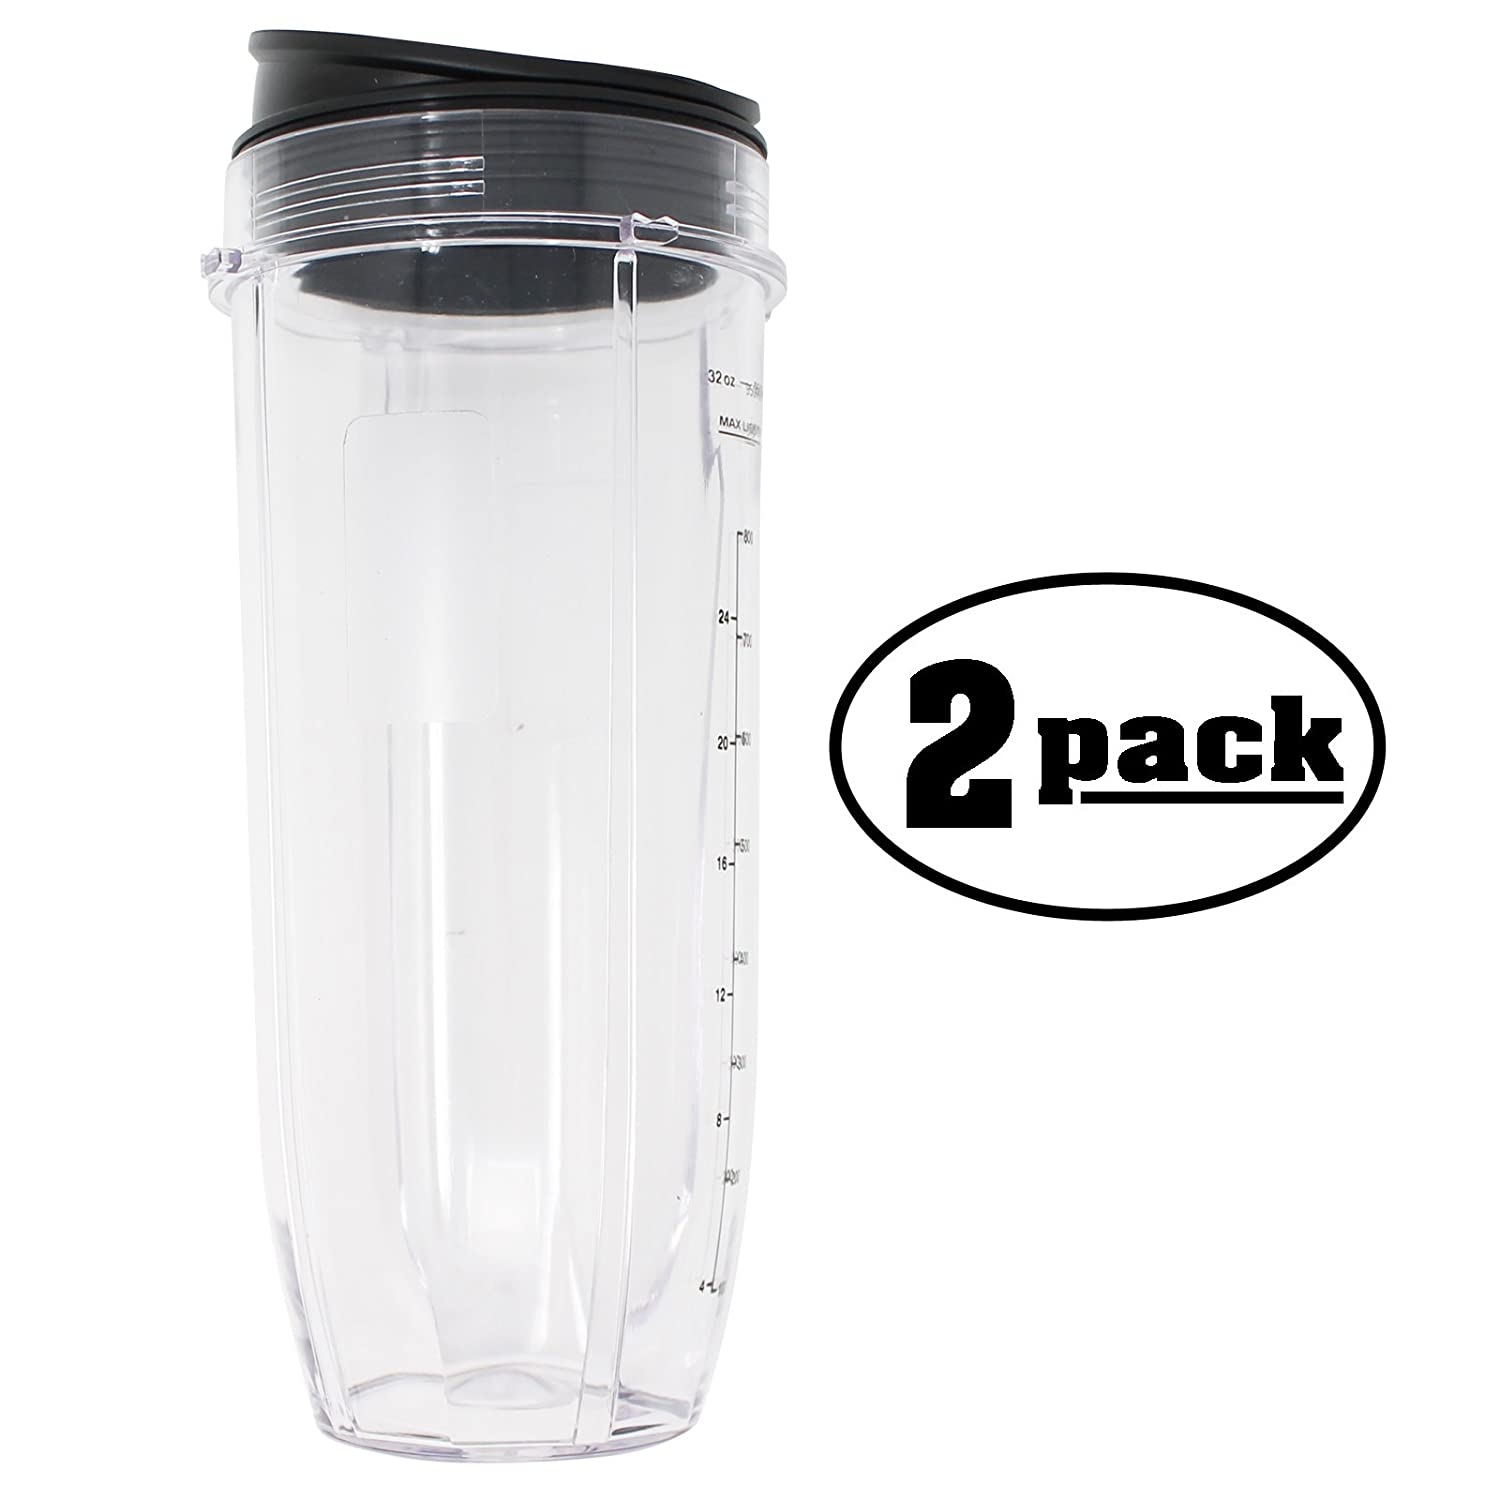 2-Pack Replacement for 32 oz Nutri Ninja Cup 407KKU641 Compatible with CT641 Nutri Ninja Intelli-Sense Blender Duo